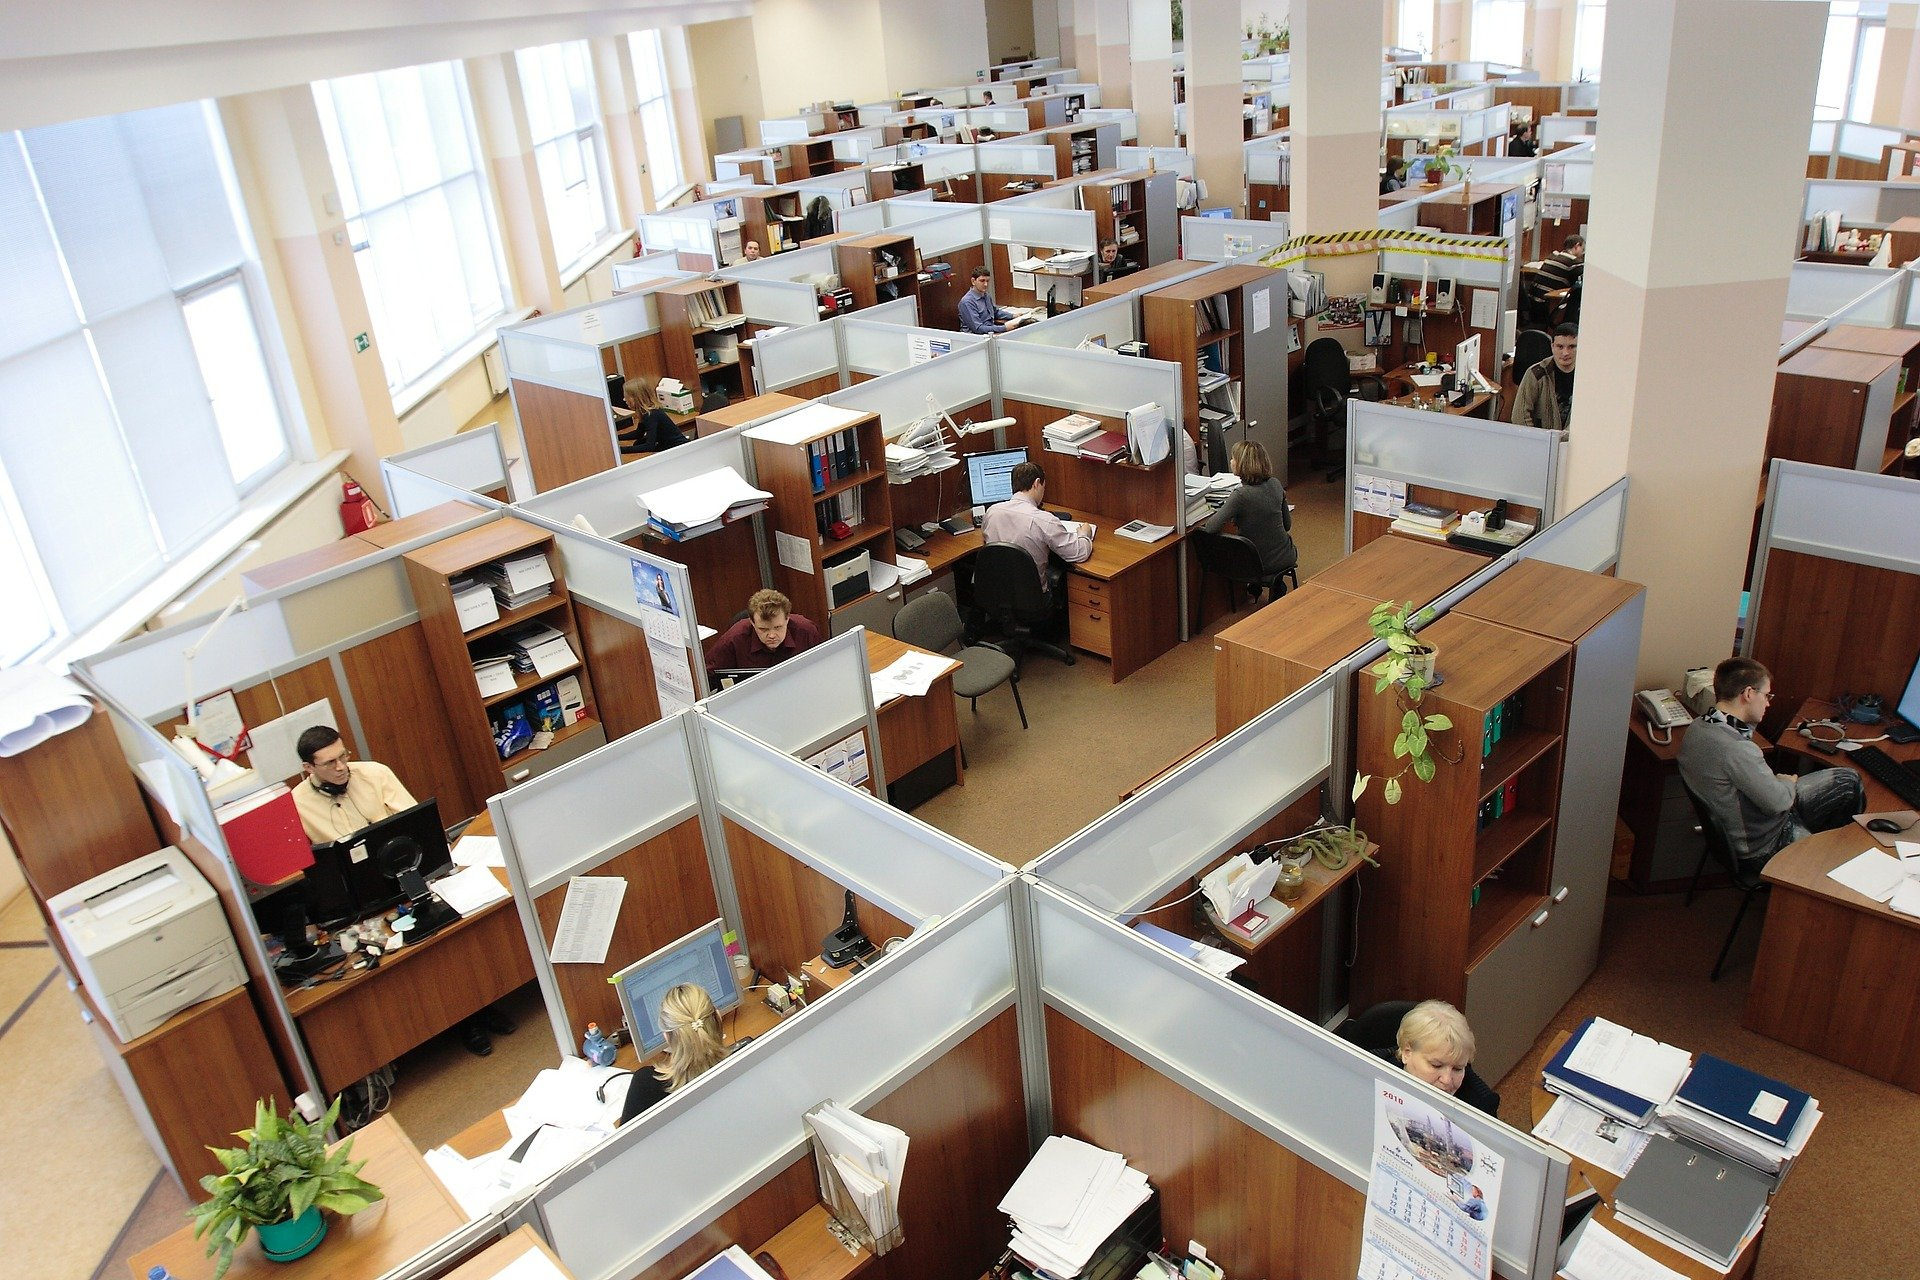 An overhead shot of an office with cubicles.